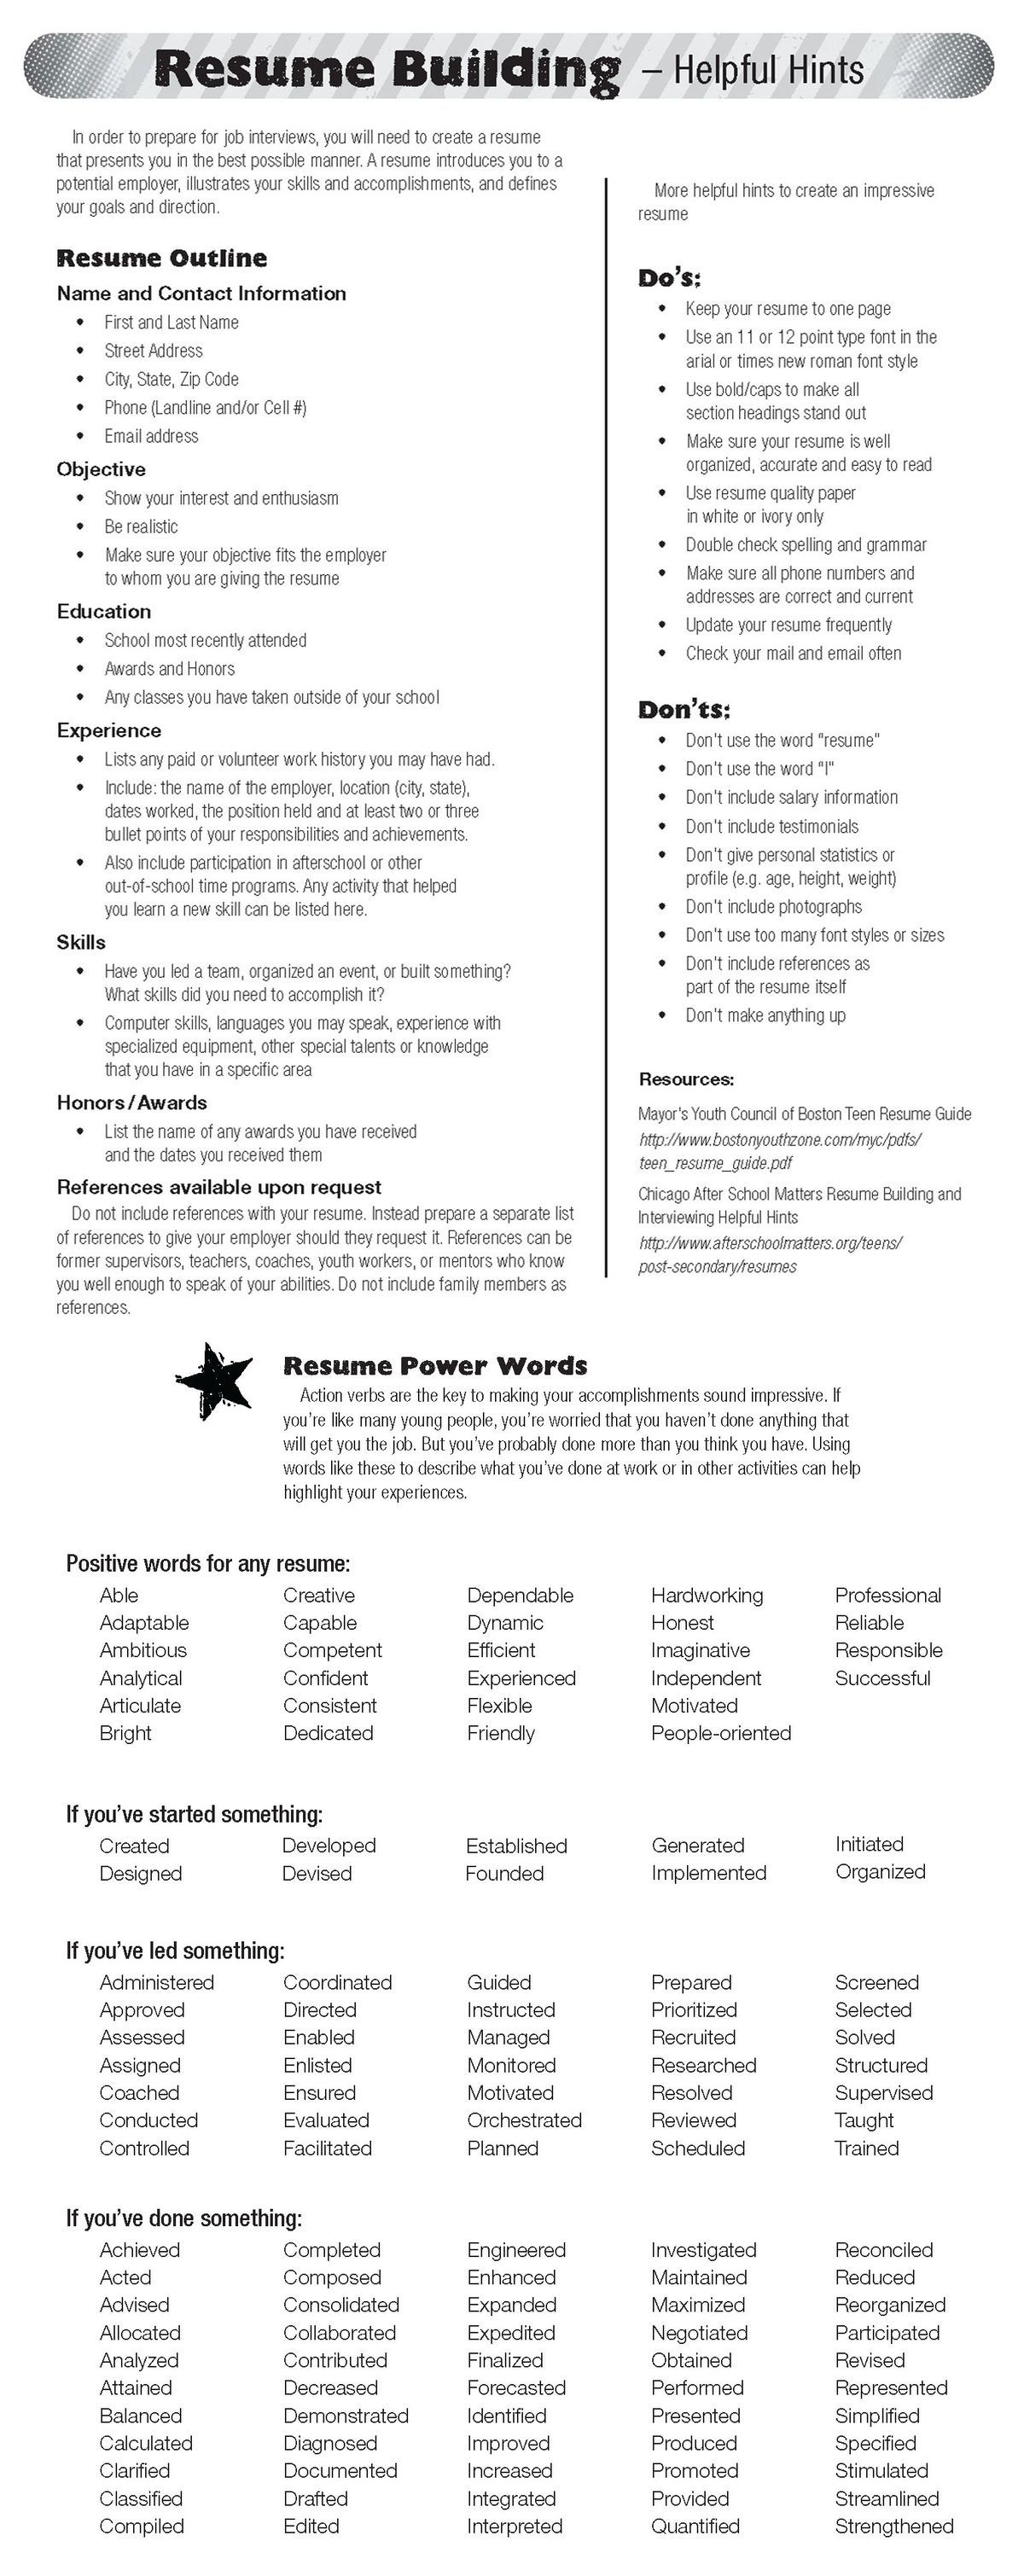 List Of Resume Skills Amazing Pincarlie Schmaeling On College  Pinterest  Job Interviews .